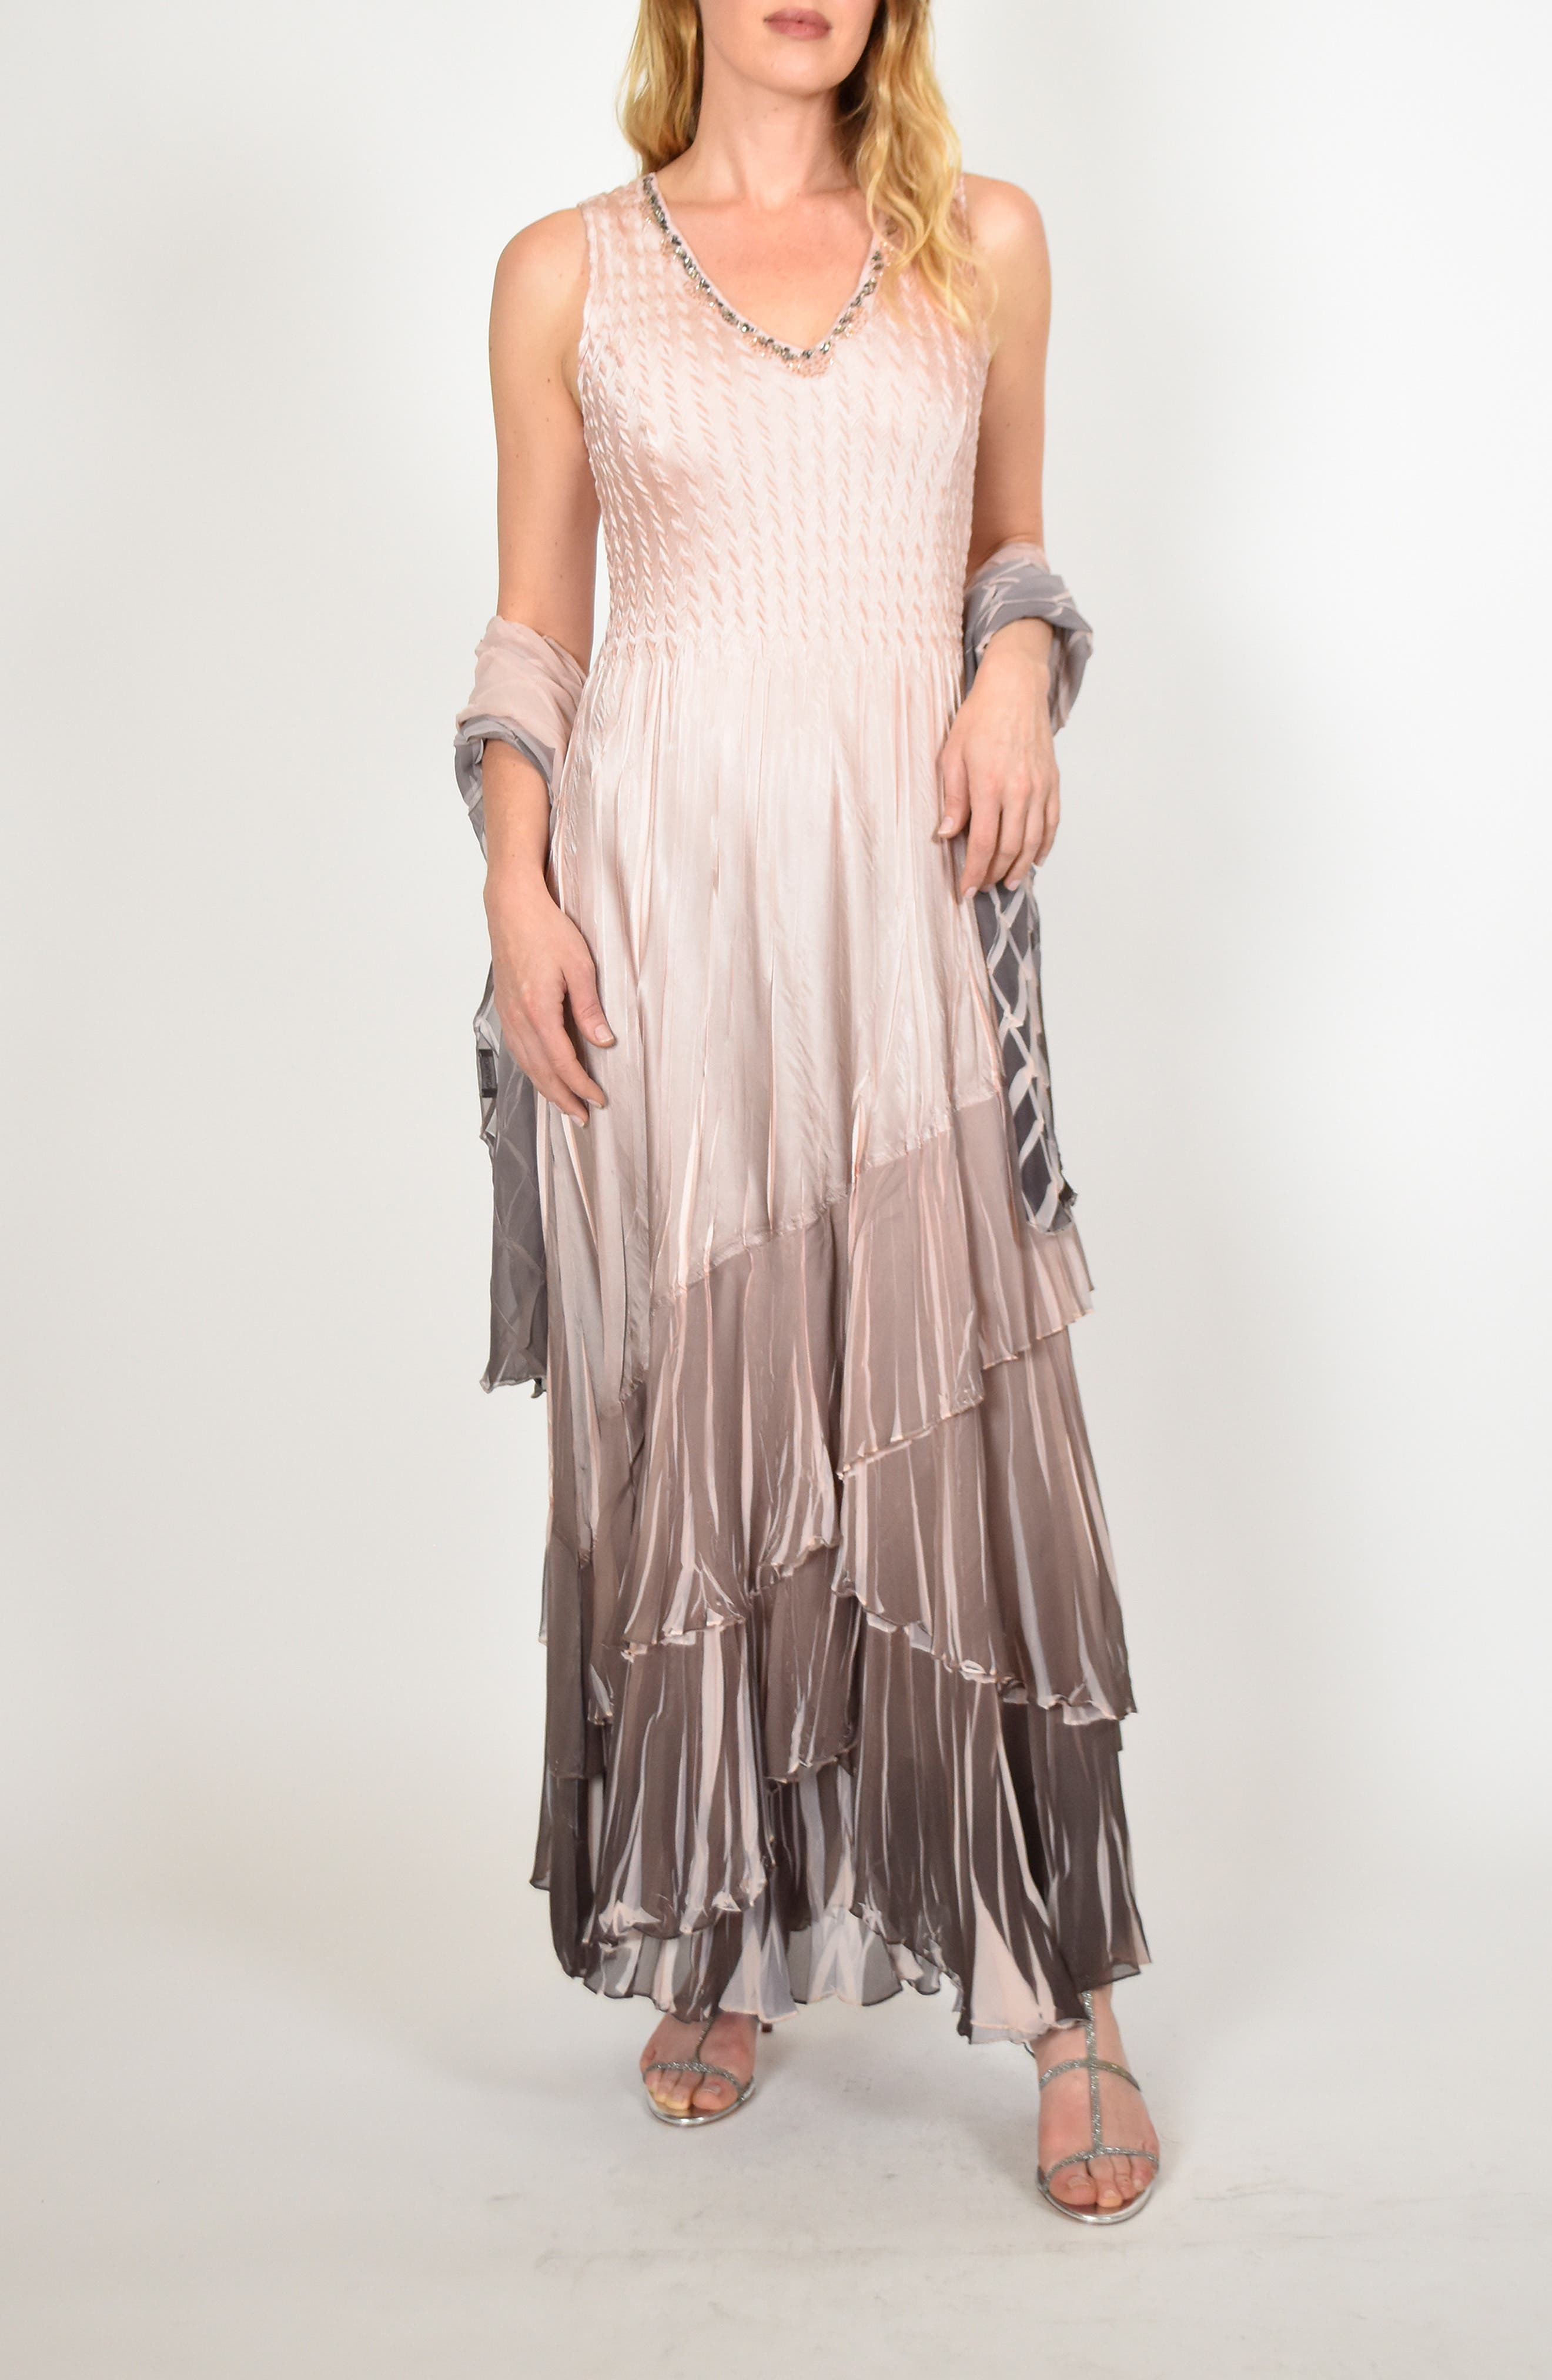 KOMAROV Layered Maxi Dress with Wrap, Main, color, VINTAGE ROSE CAFE OMBRE